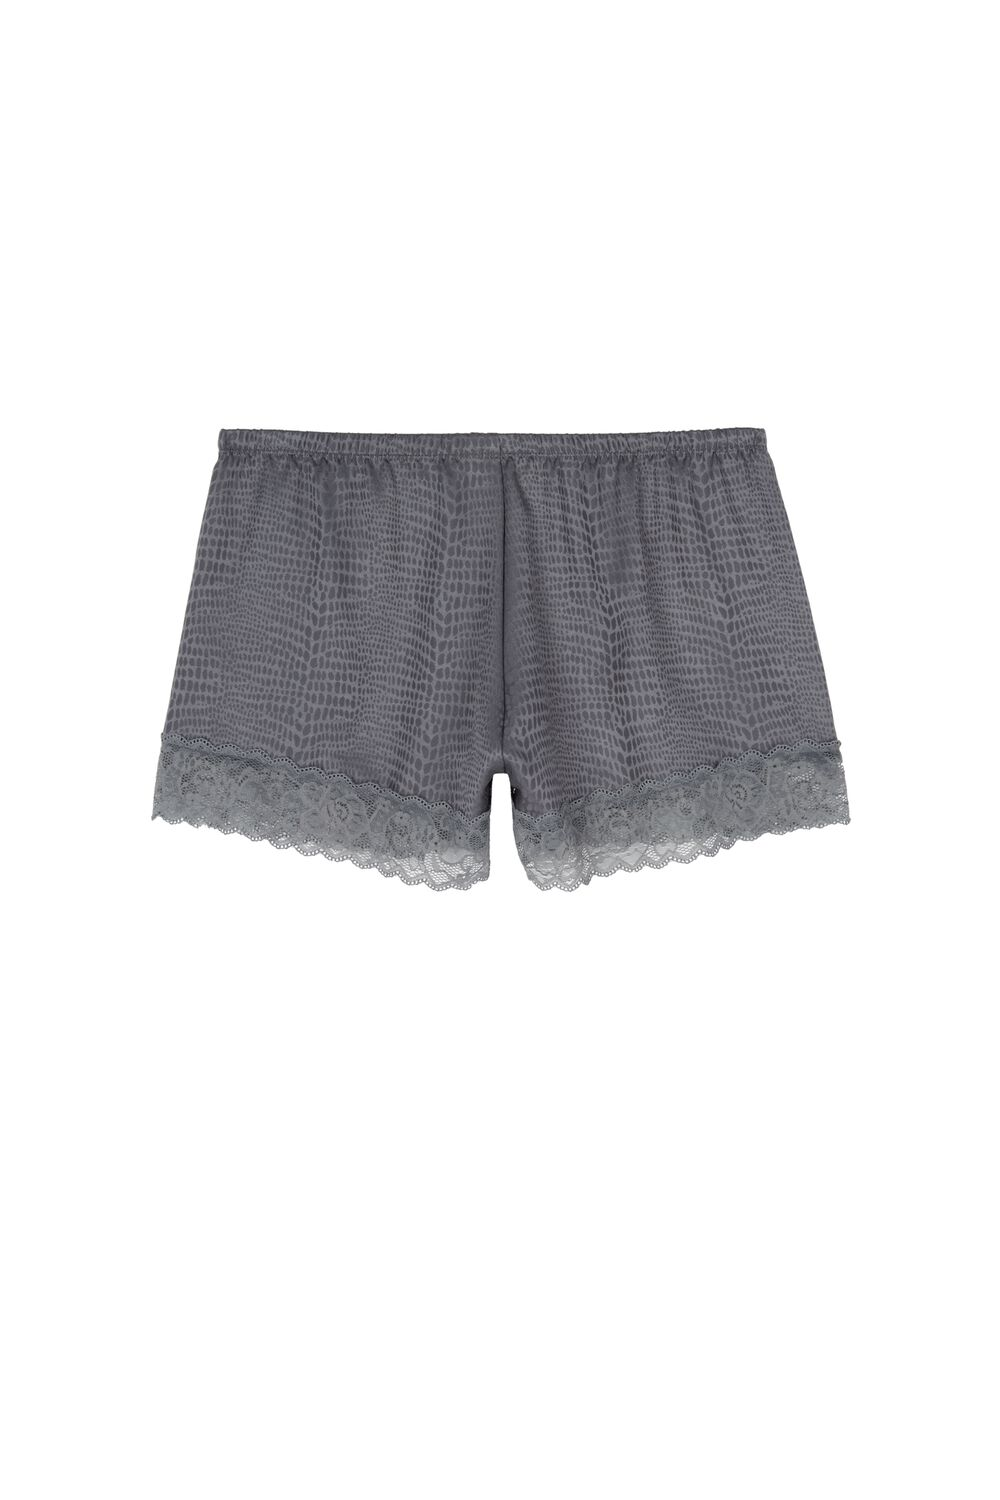 Lace and Satin Snakeskin Look Textured Shorts